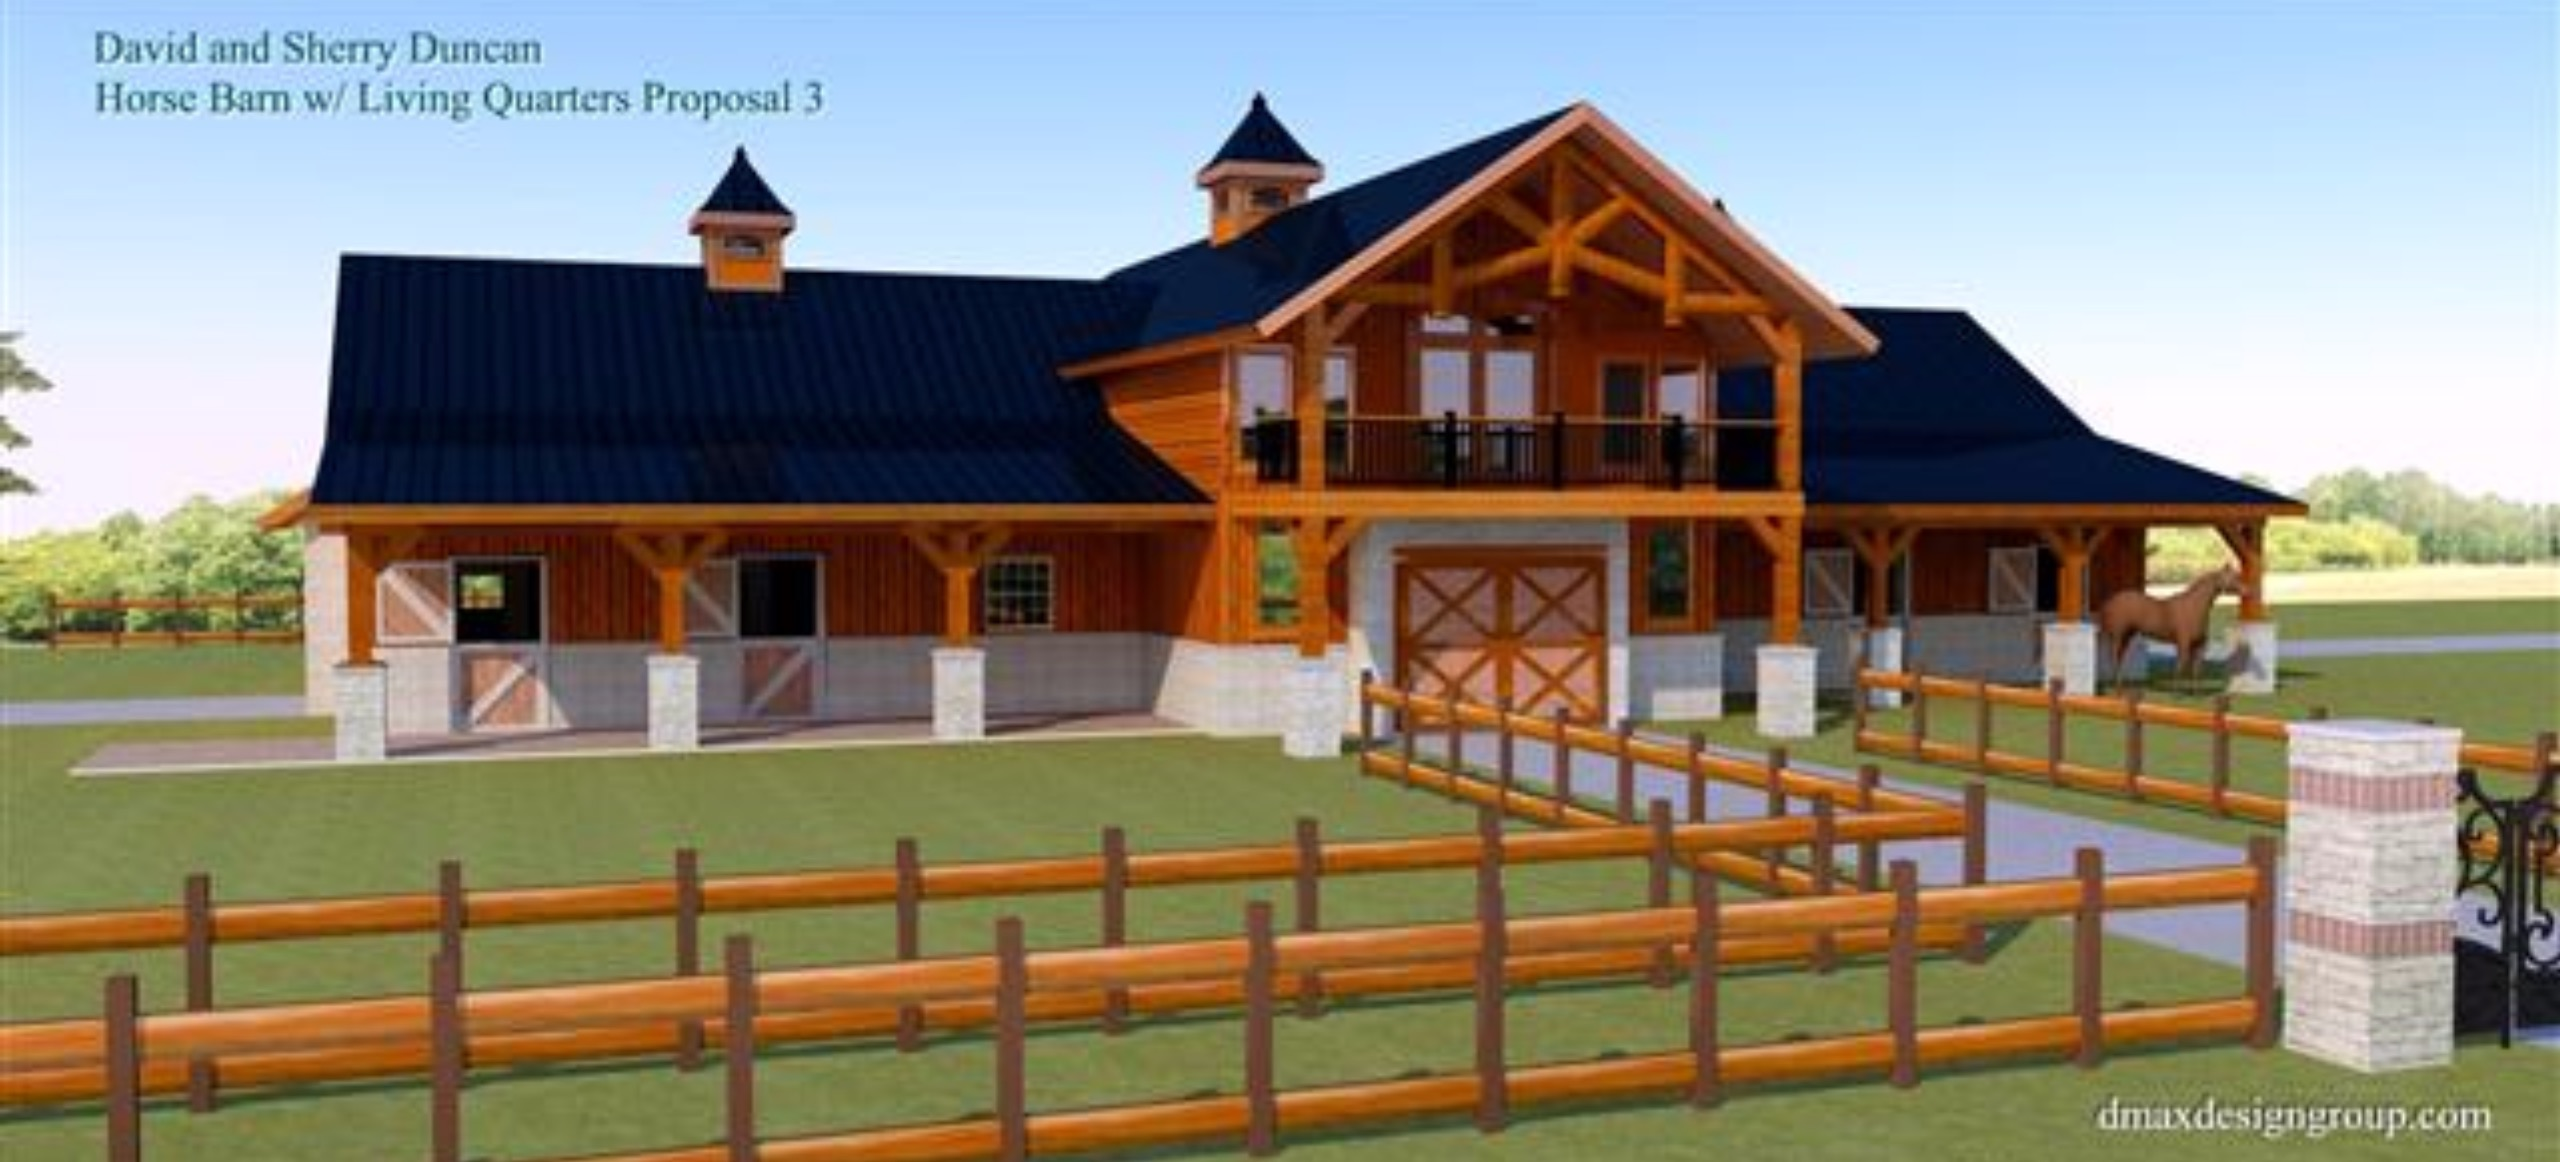 Barns and buildings quality barns and buildings horse for Barn apartment ideas